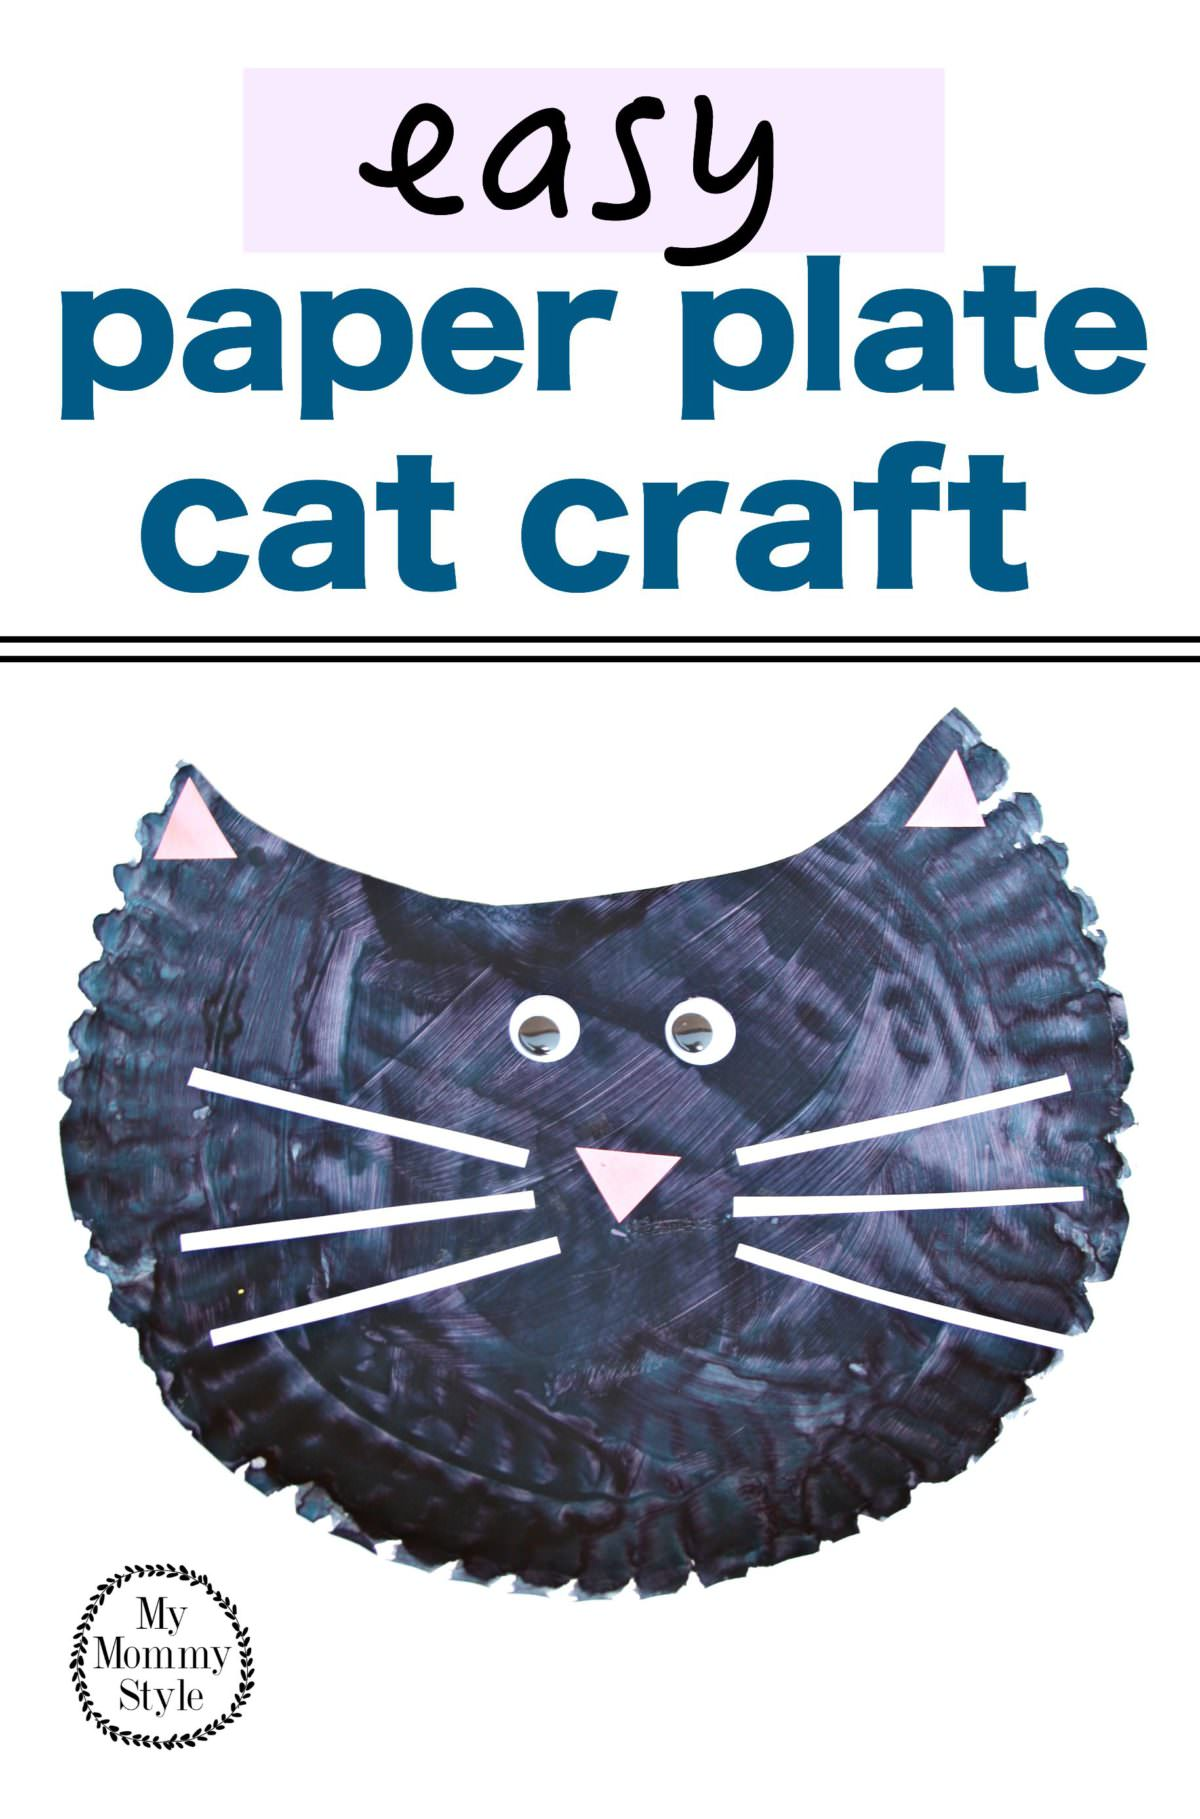 sc 1 st  My Mommy Style & Easy Paper Plate Cat Craft - My Mommy Style